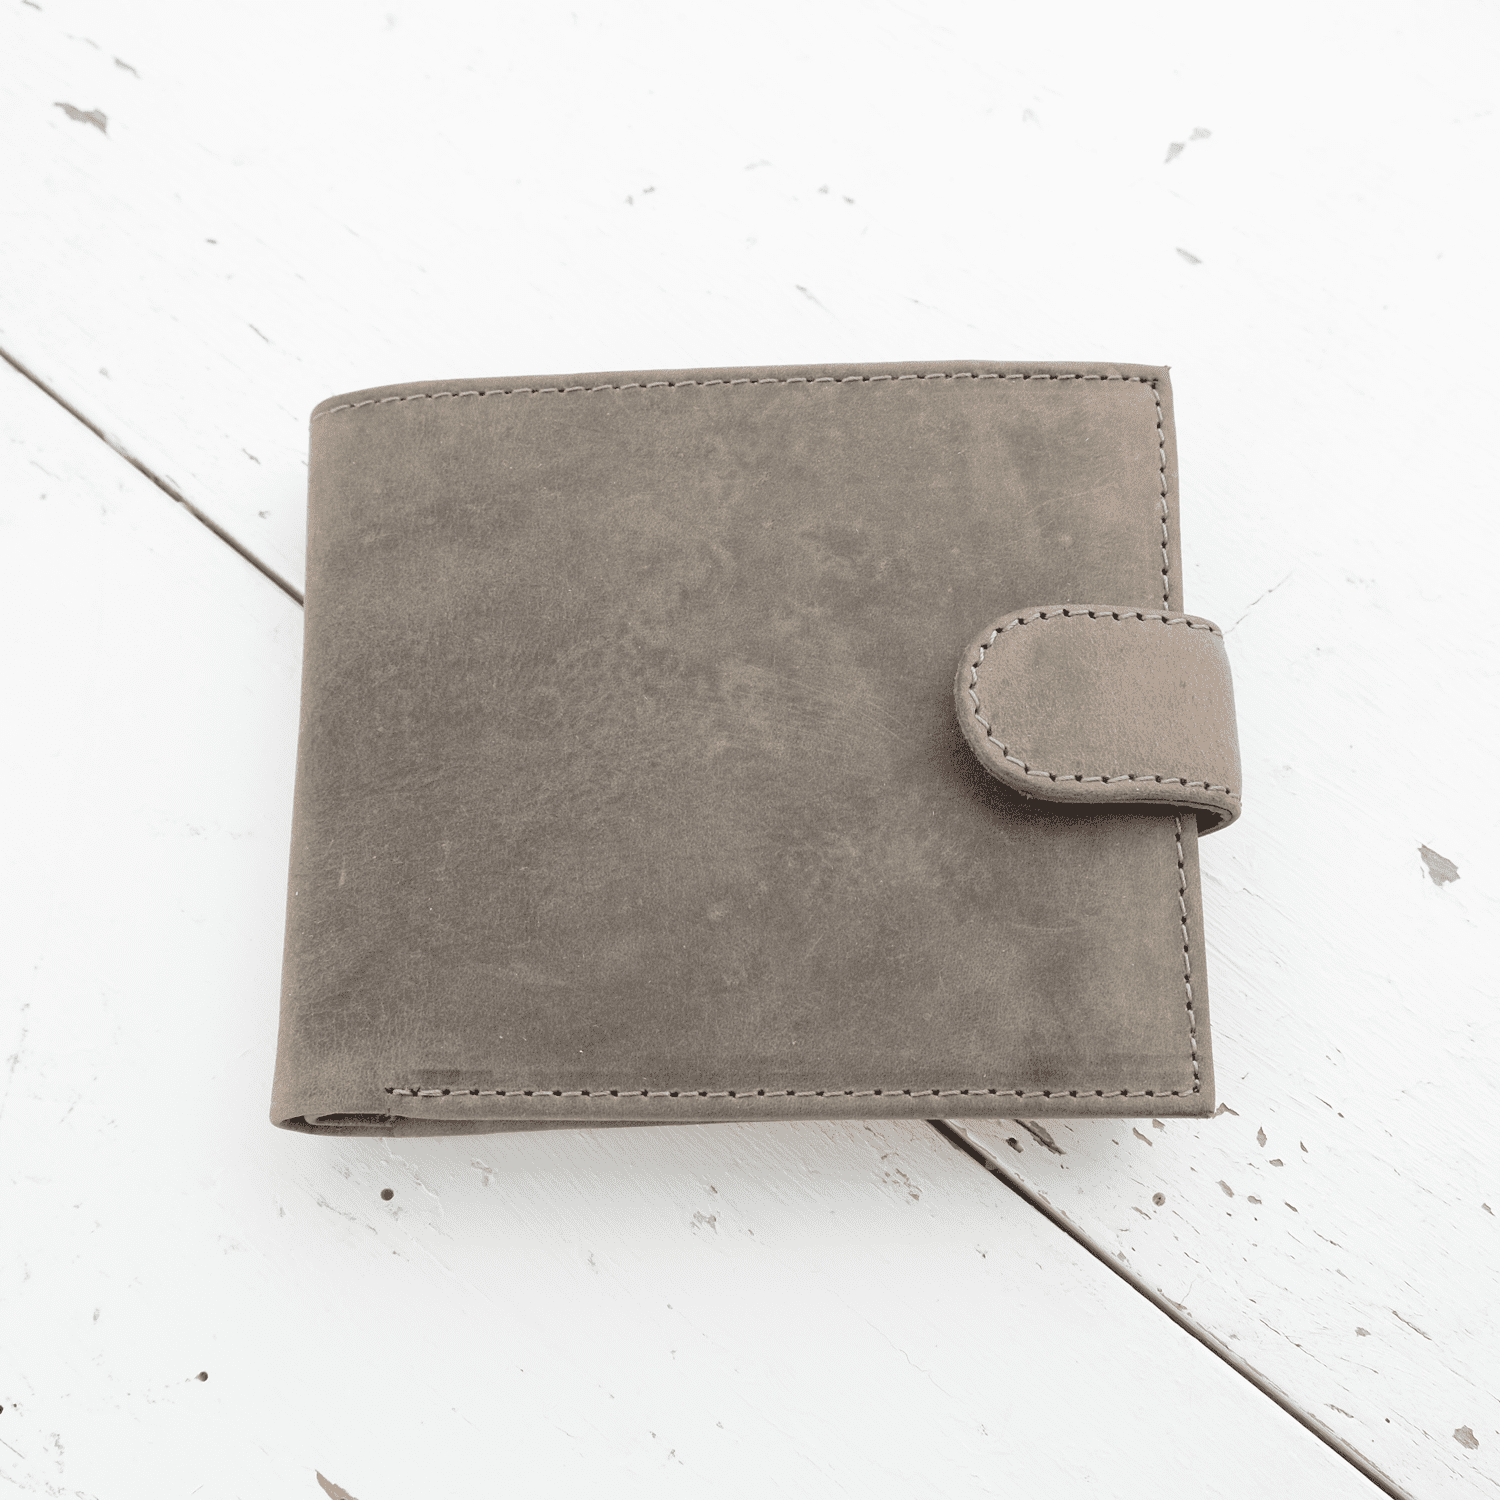 Oxfam Shop New Zealand eco leather wallet 09.03.8239